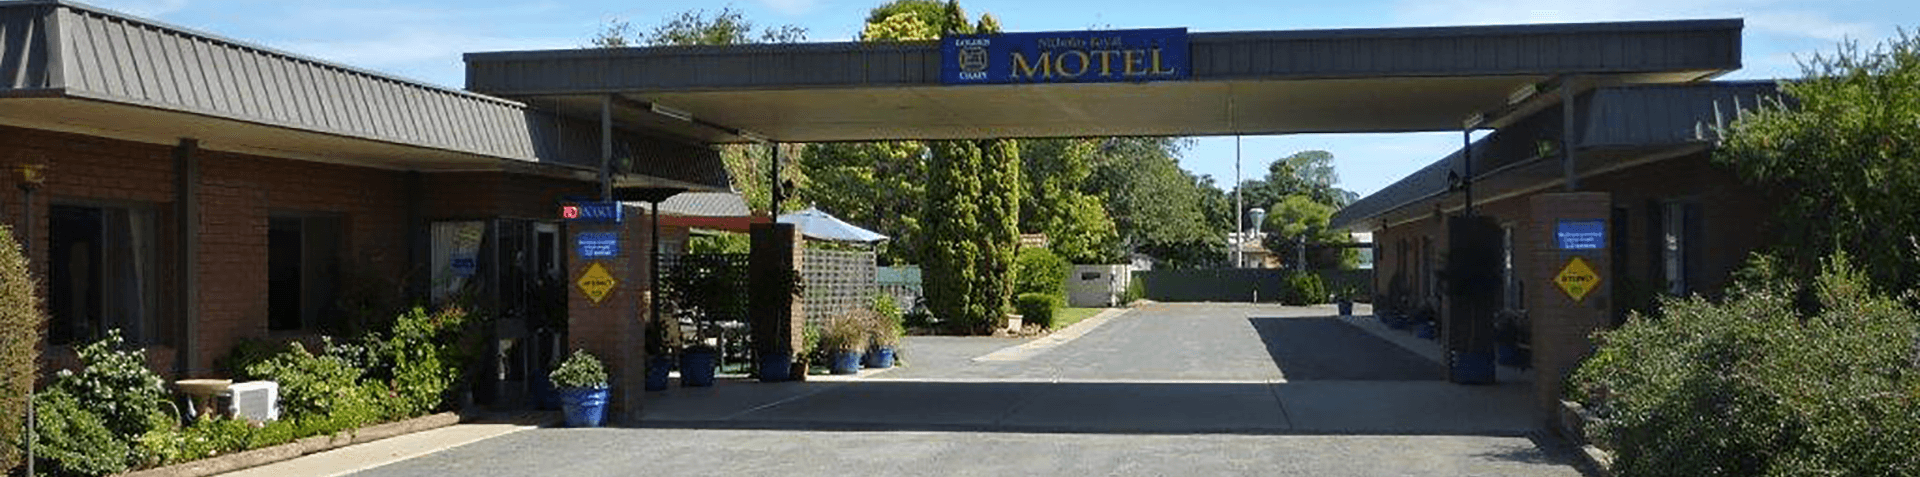 Motels Hay Nsw